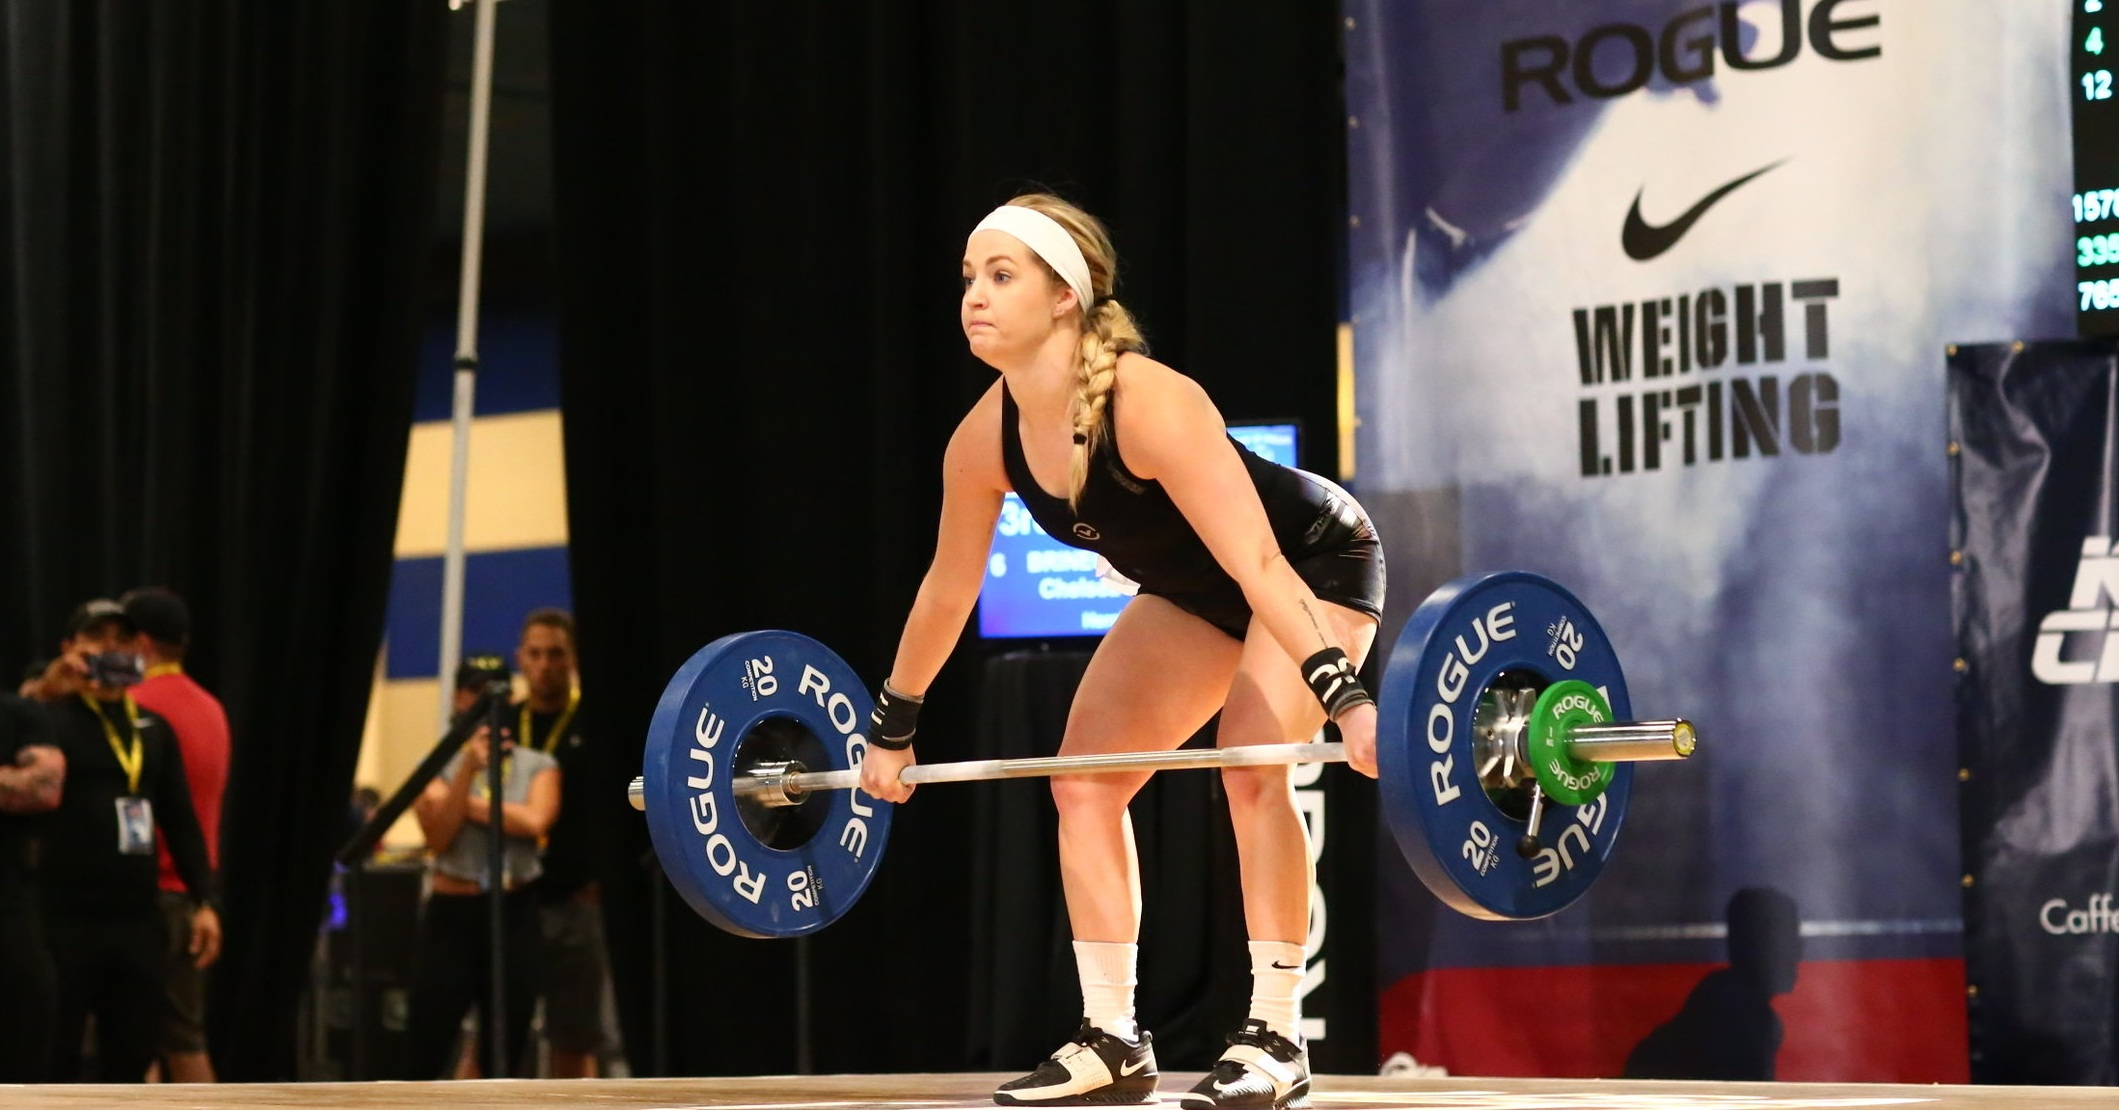 """CHELSEA BRINEGER     Weightlifter    """"I started seeing Ryan to help with some back pain. Ryan took the time to understand my background - not just my athletic history but my life outside of the gym as well (sleep, stress management, etc). We have used a multifaceted approach incorporating breathing drills, daily correctives, and volume management. Within weeks of consistent work guided by Ryan, I've noticed a huge improvement. I'm thankful to have HQ in my corner!"""""""